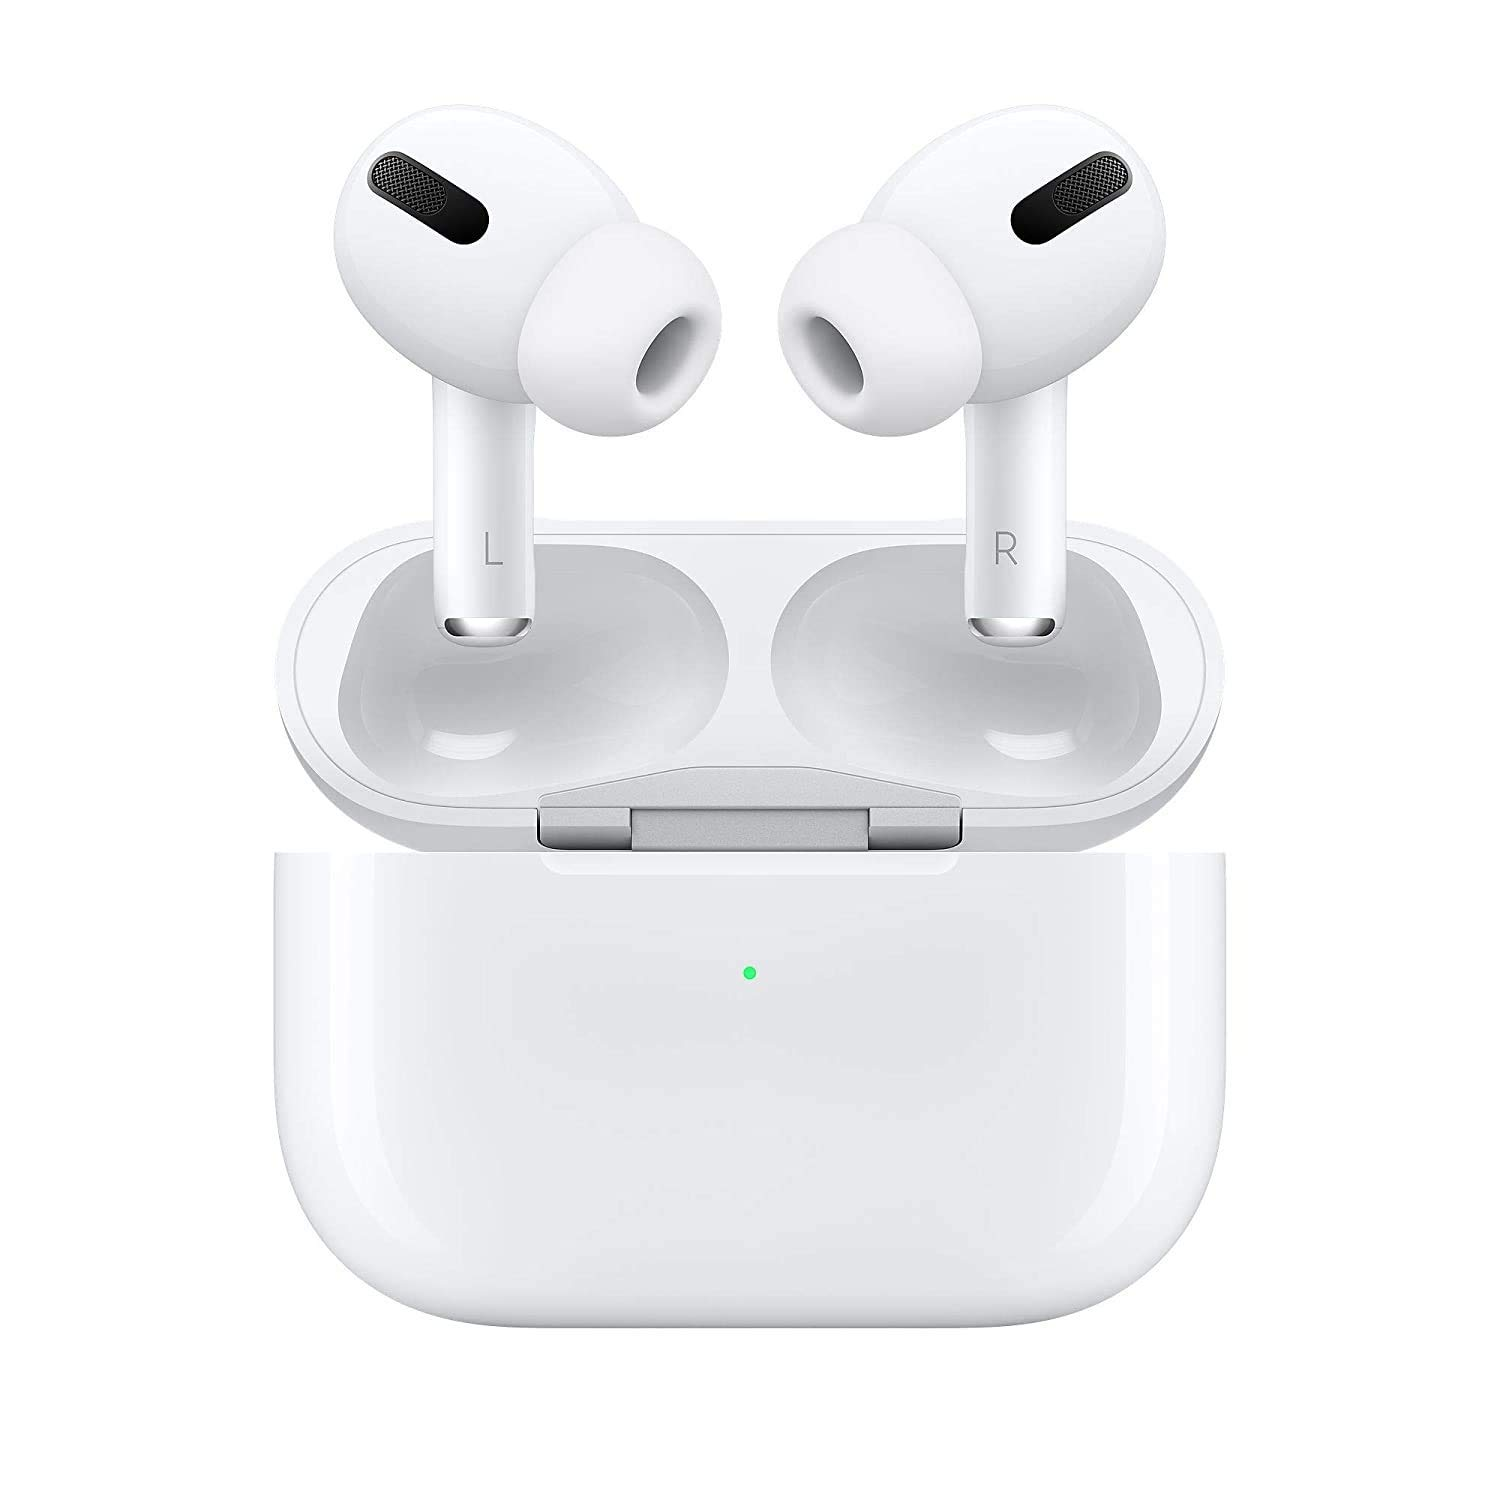 Cm Products Airpods Pro with Wireless Charging Case & Charging Cable Compatible with iOS/Android